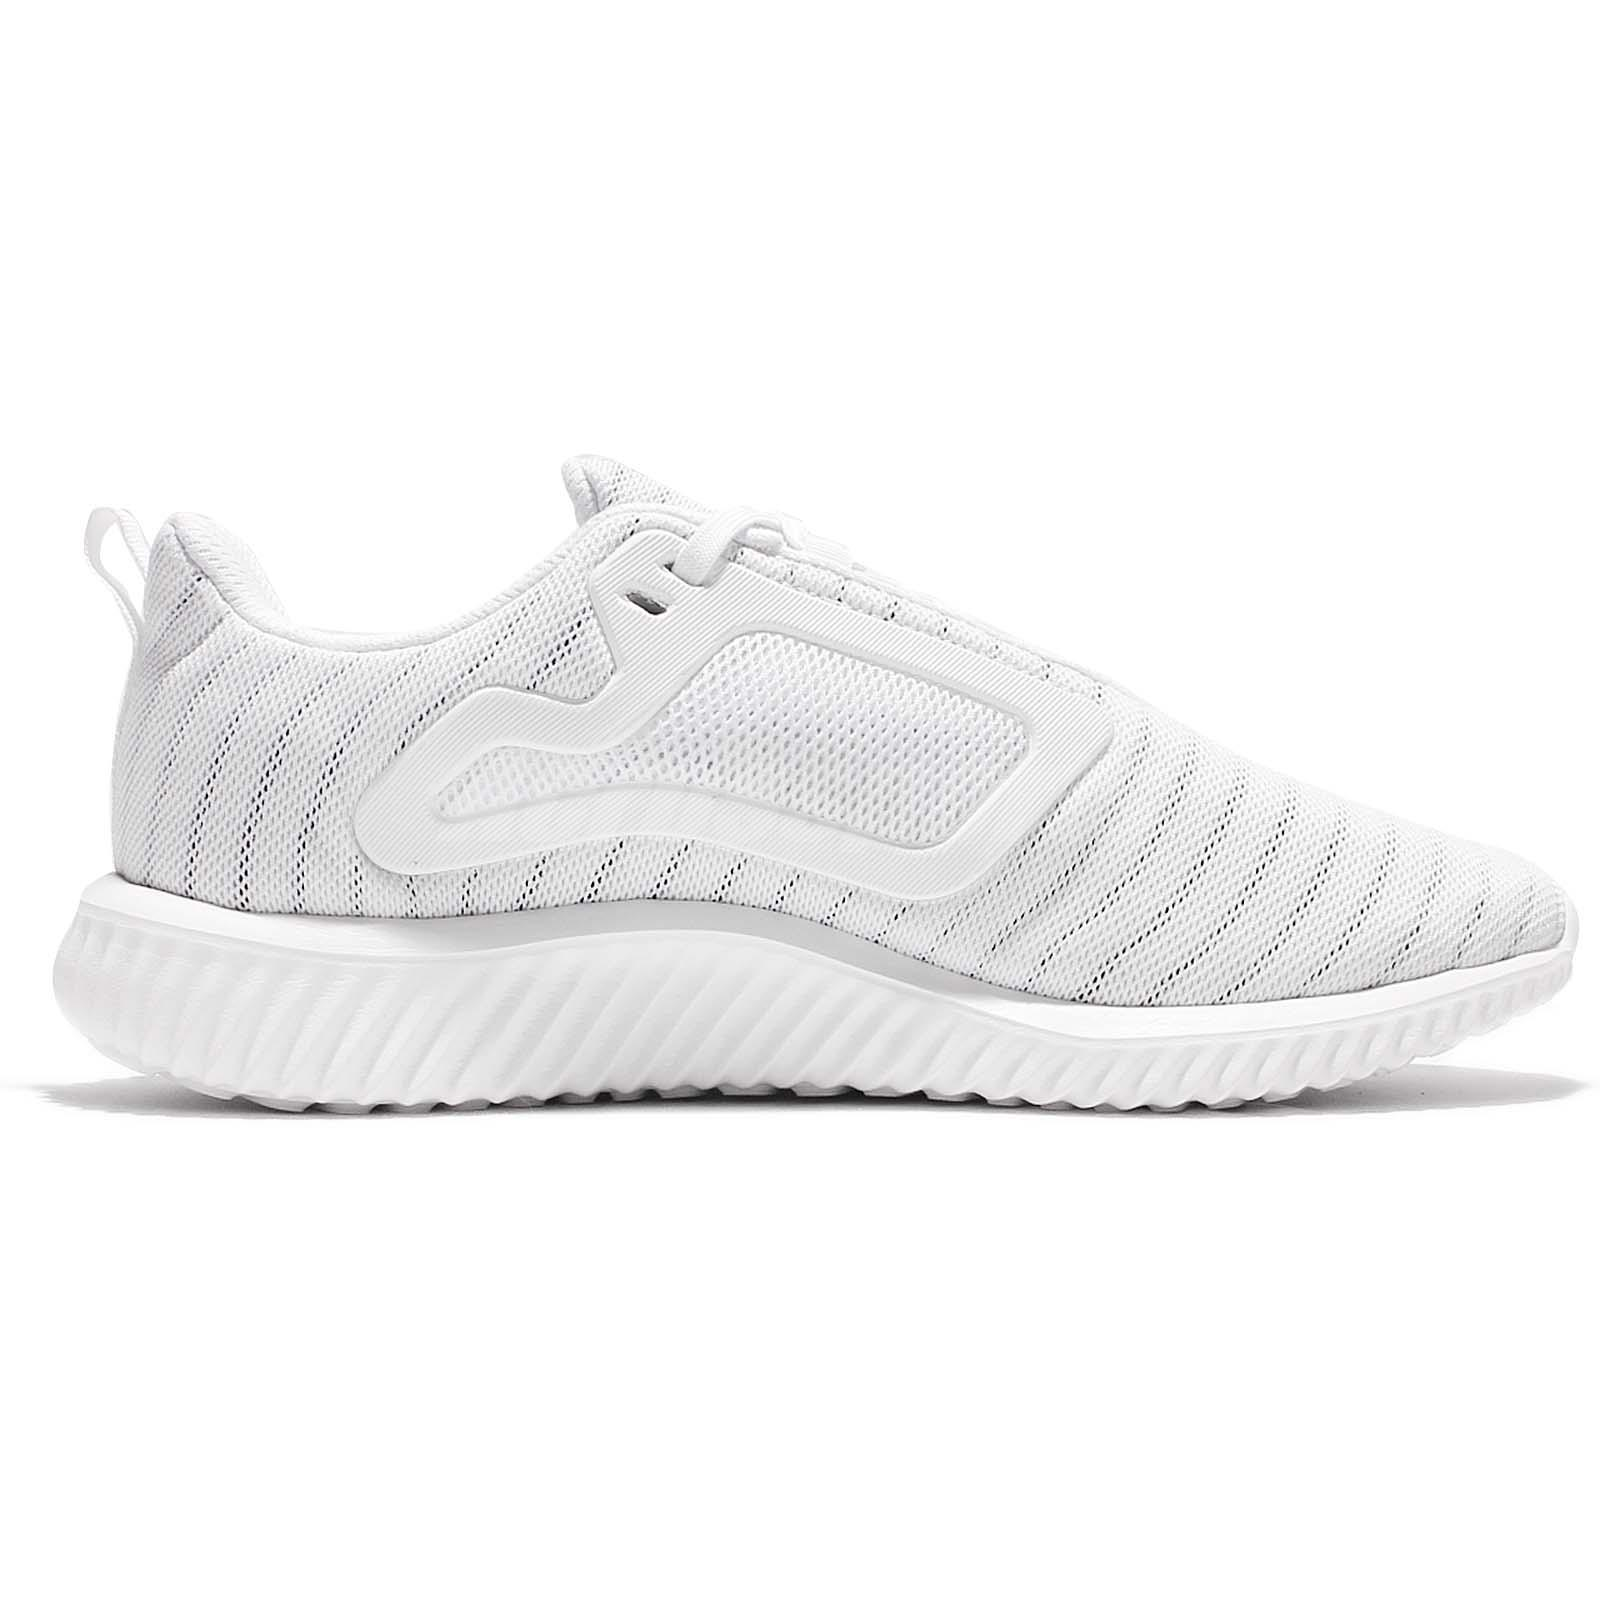 size 40 277c5 b8517 adidas Climacool W Bounce Triple White Women Running Shoes Sneakers BB1796